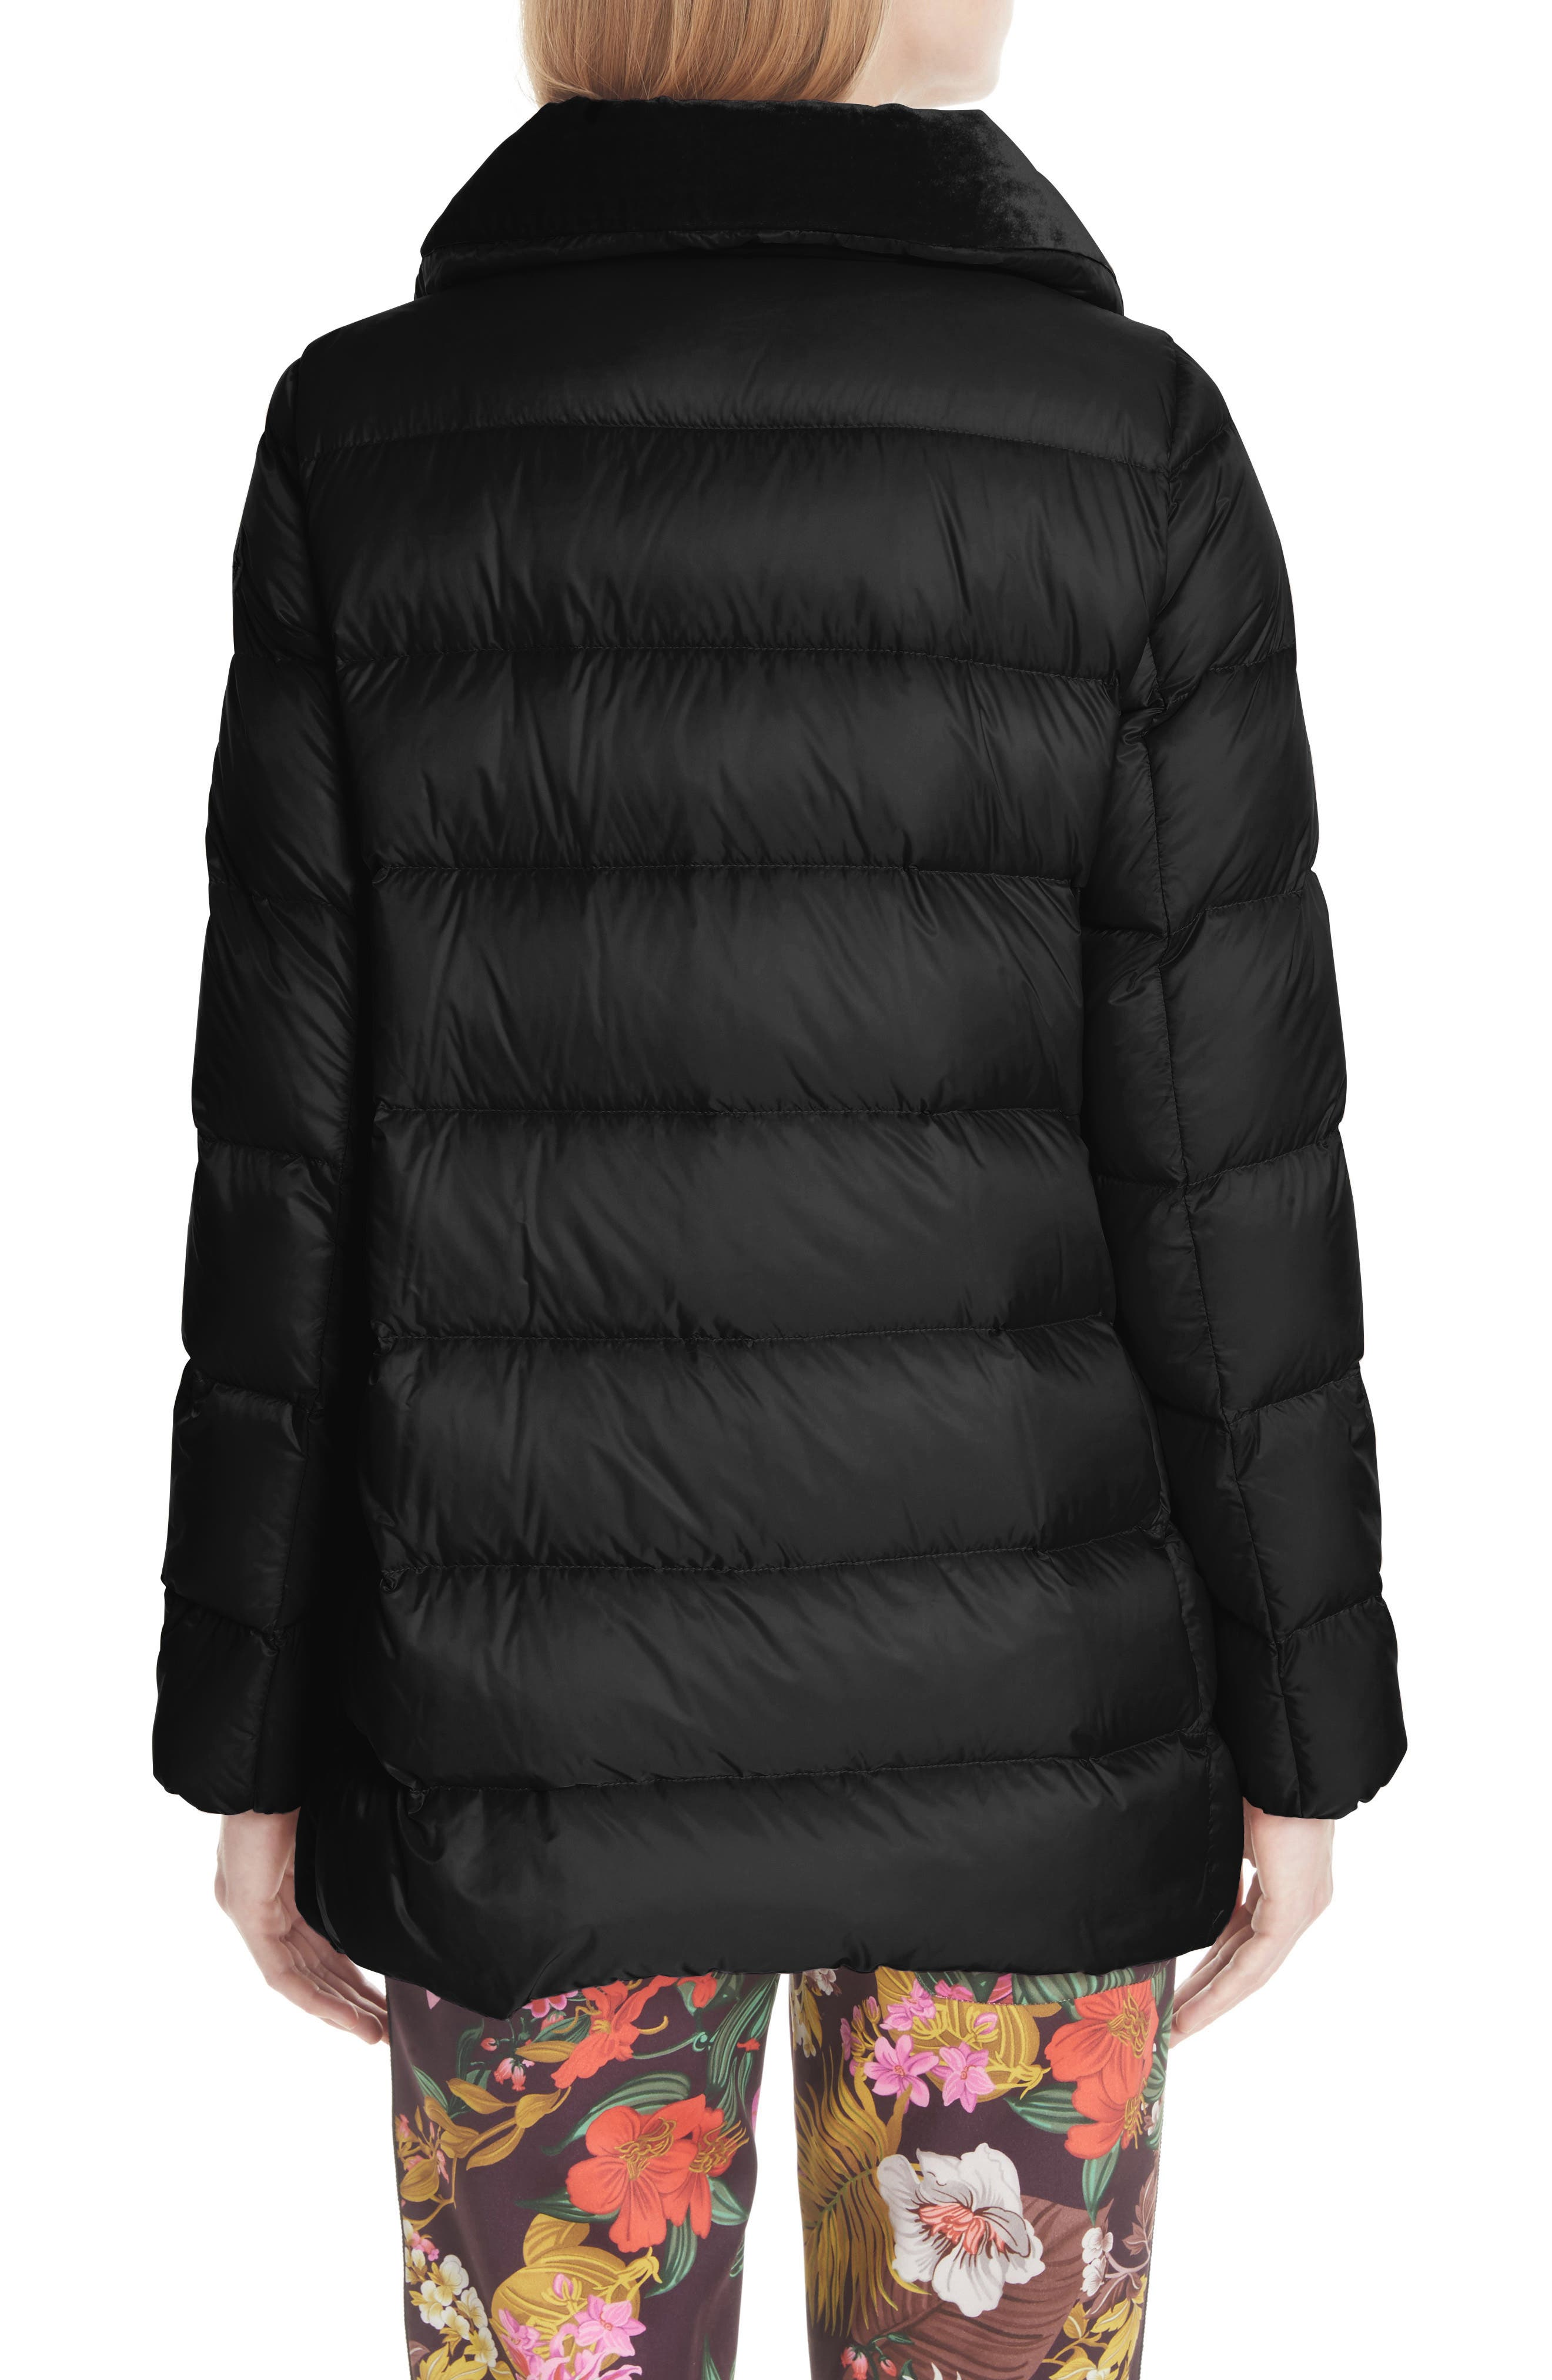 MONCLER, Torcol Quilted Down Jacket, Alternate thumbnail 2, color, BLACK